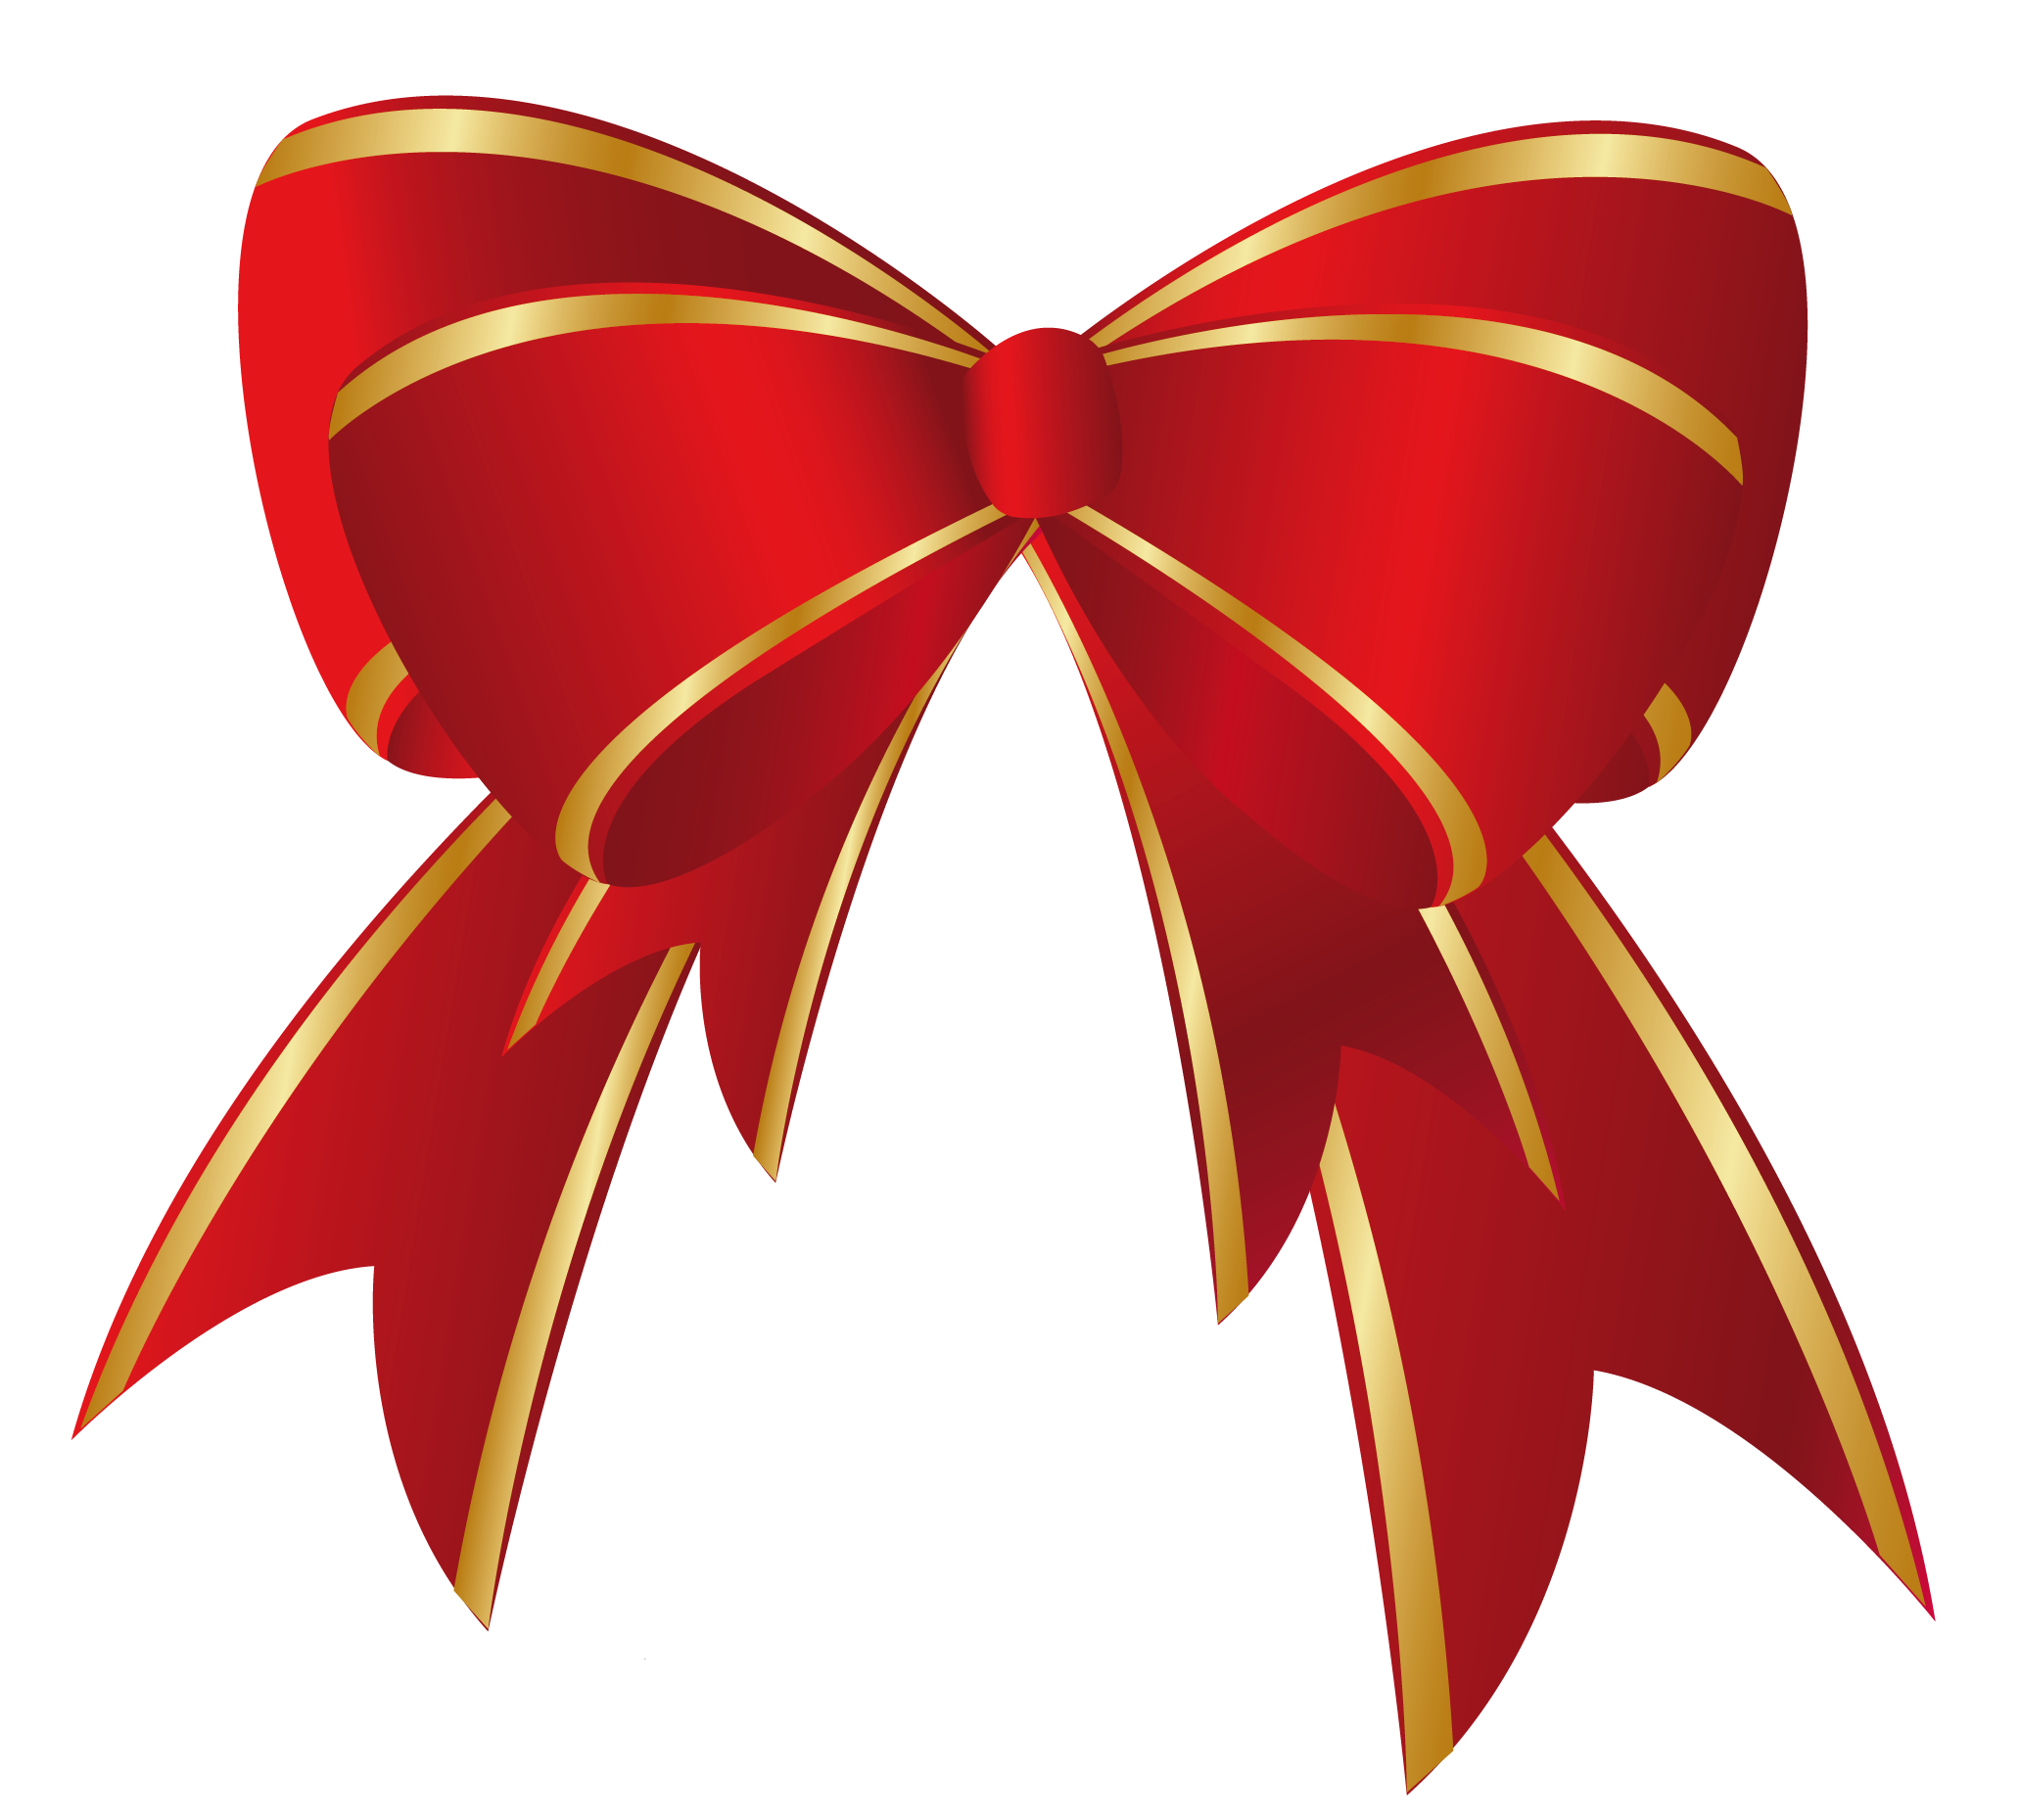 Heart With Red Bow Png Clipart image #42252